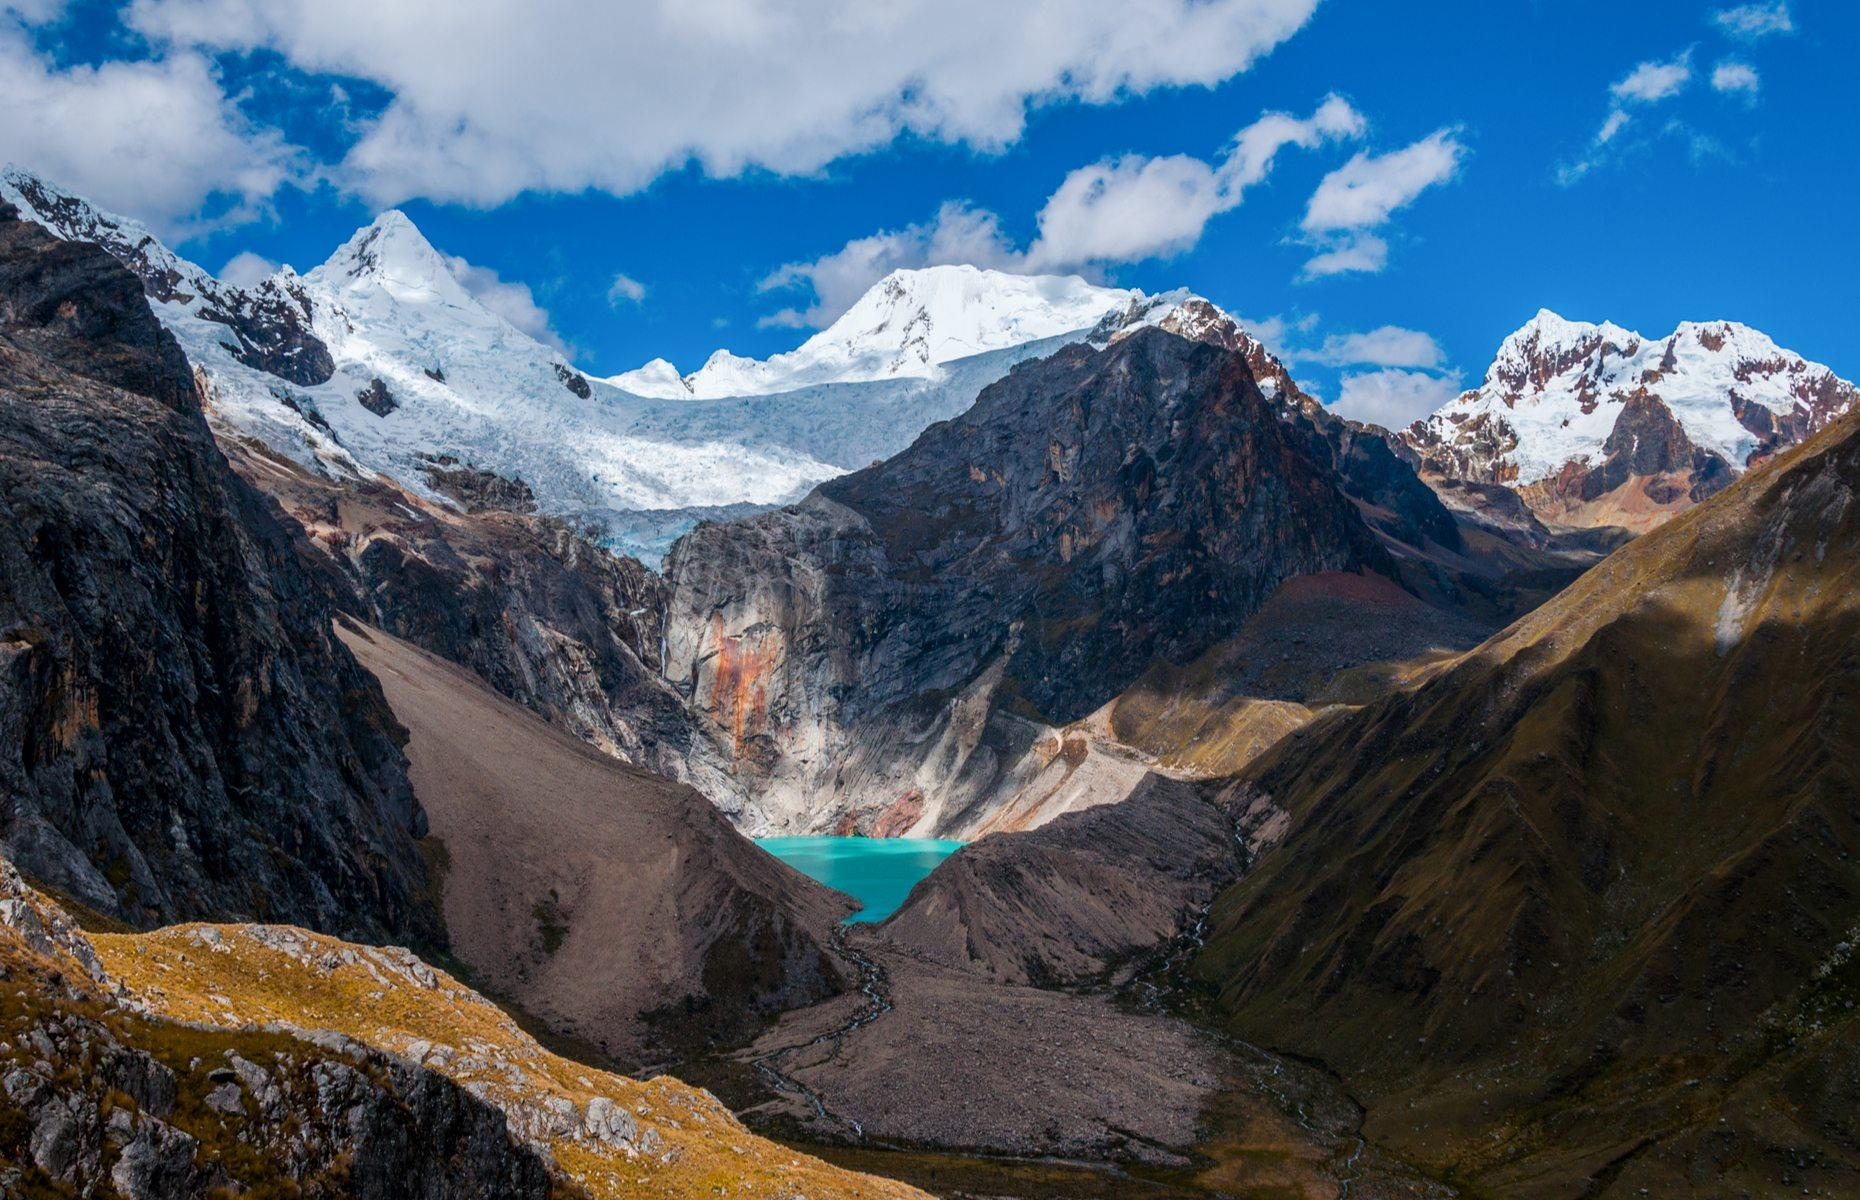 Slide 3 of 31: Set in the world's highest tropical mountain range, the Cordillera Blanca, Peru's Huascarán National Park is the next most Instagrammed scene, with just over 28,000 posts capturing its famous turquoise lakes and mountain scenery. Soaring a mighty 22,205 feet (6,768m), the park centers around its namesake mountain, Mount Huascarán, Peru's highest peak. The eye-popping blue lake Laguna 69, is another favorite amongst visitors, sitting at the foot of Pisco Mountain.